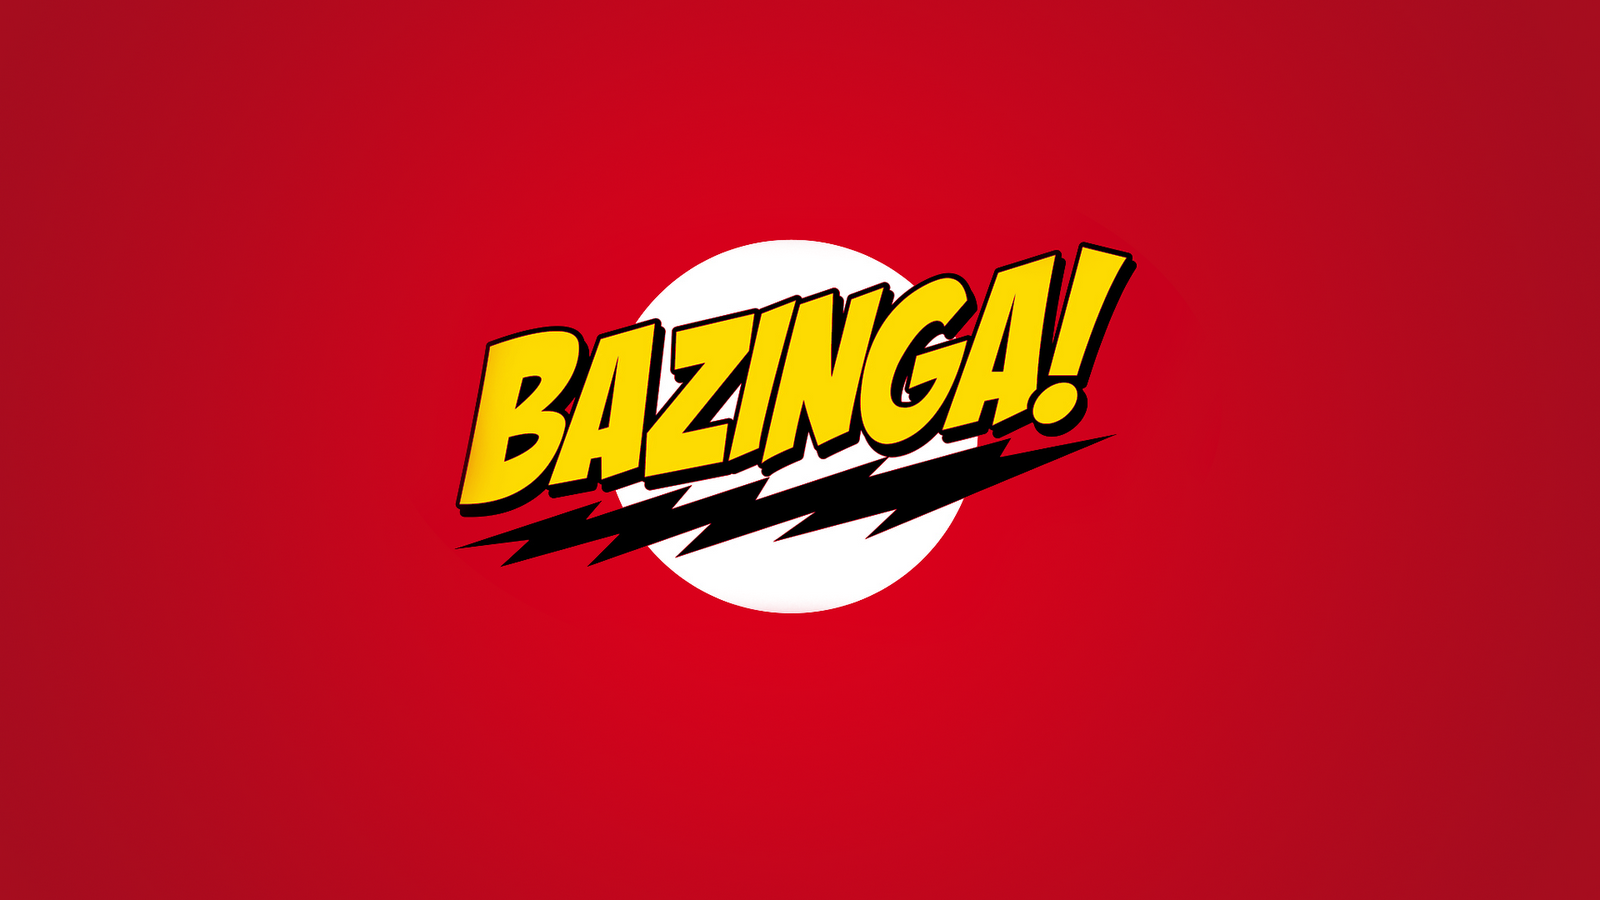 Bazinga! Wallpaper